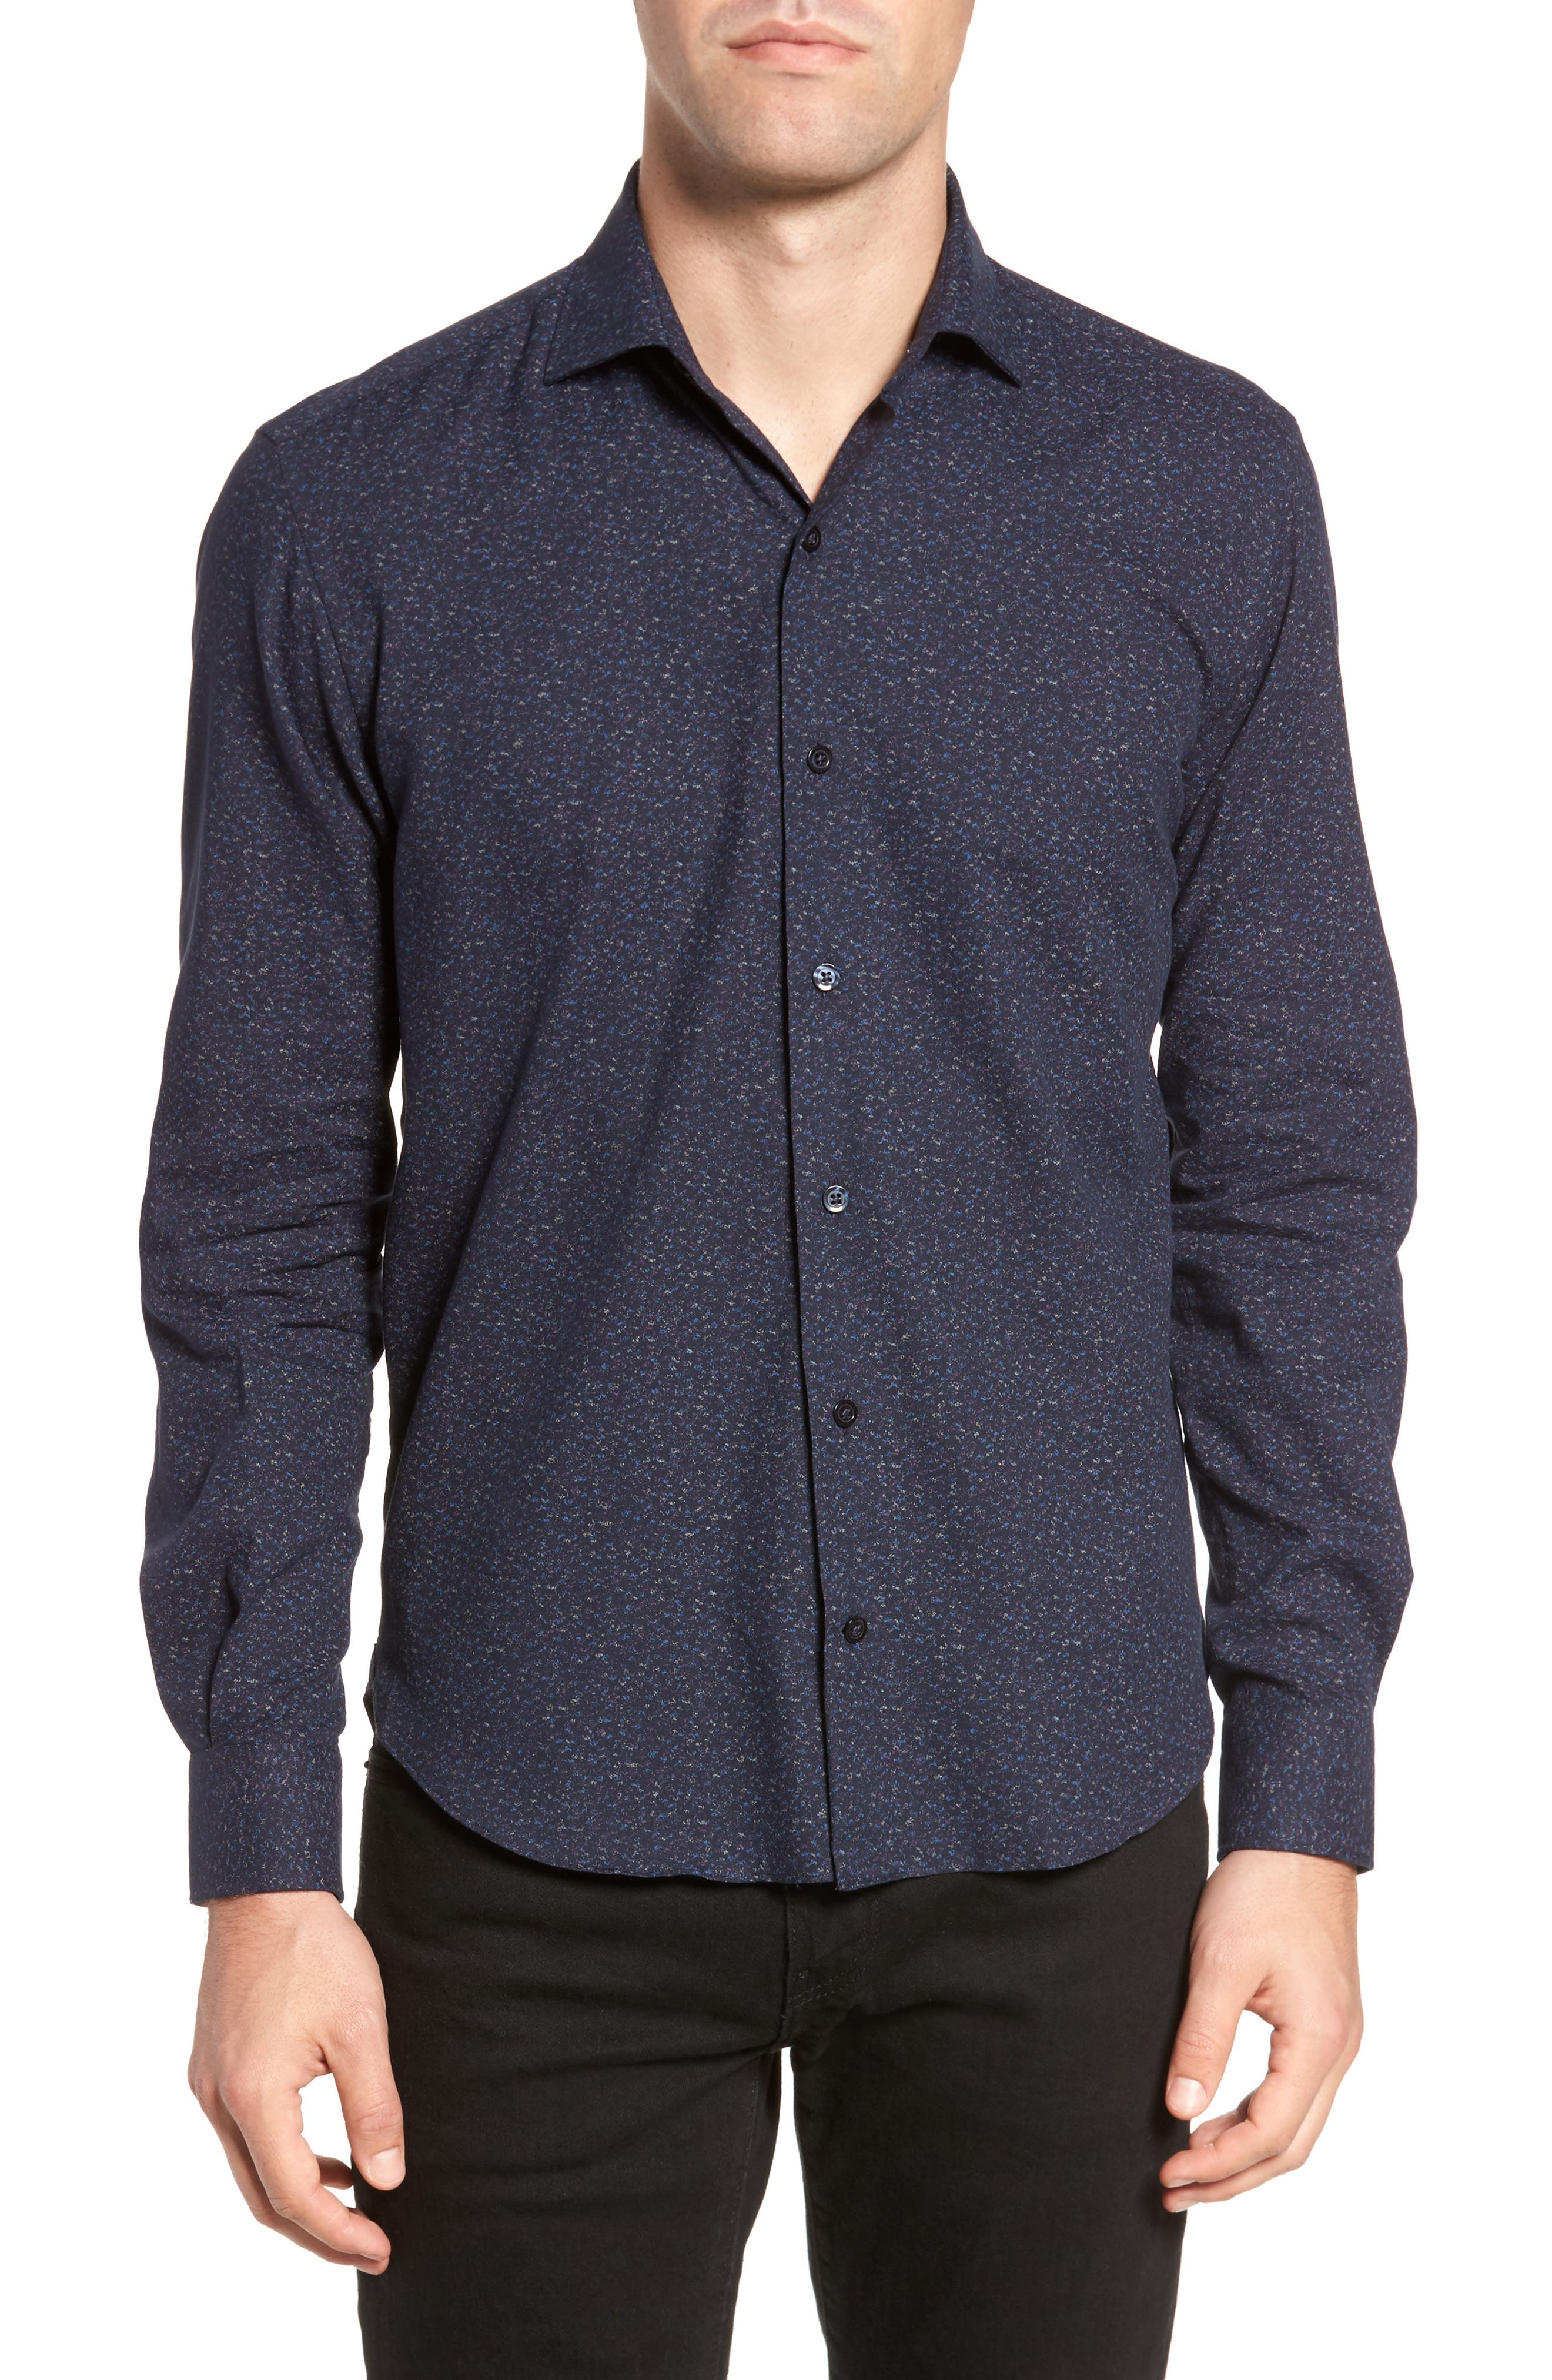 Speckled Sport Shirt,                             Main thumbnail 1, color,                             400